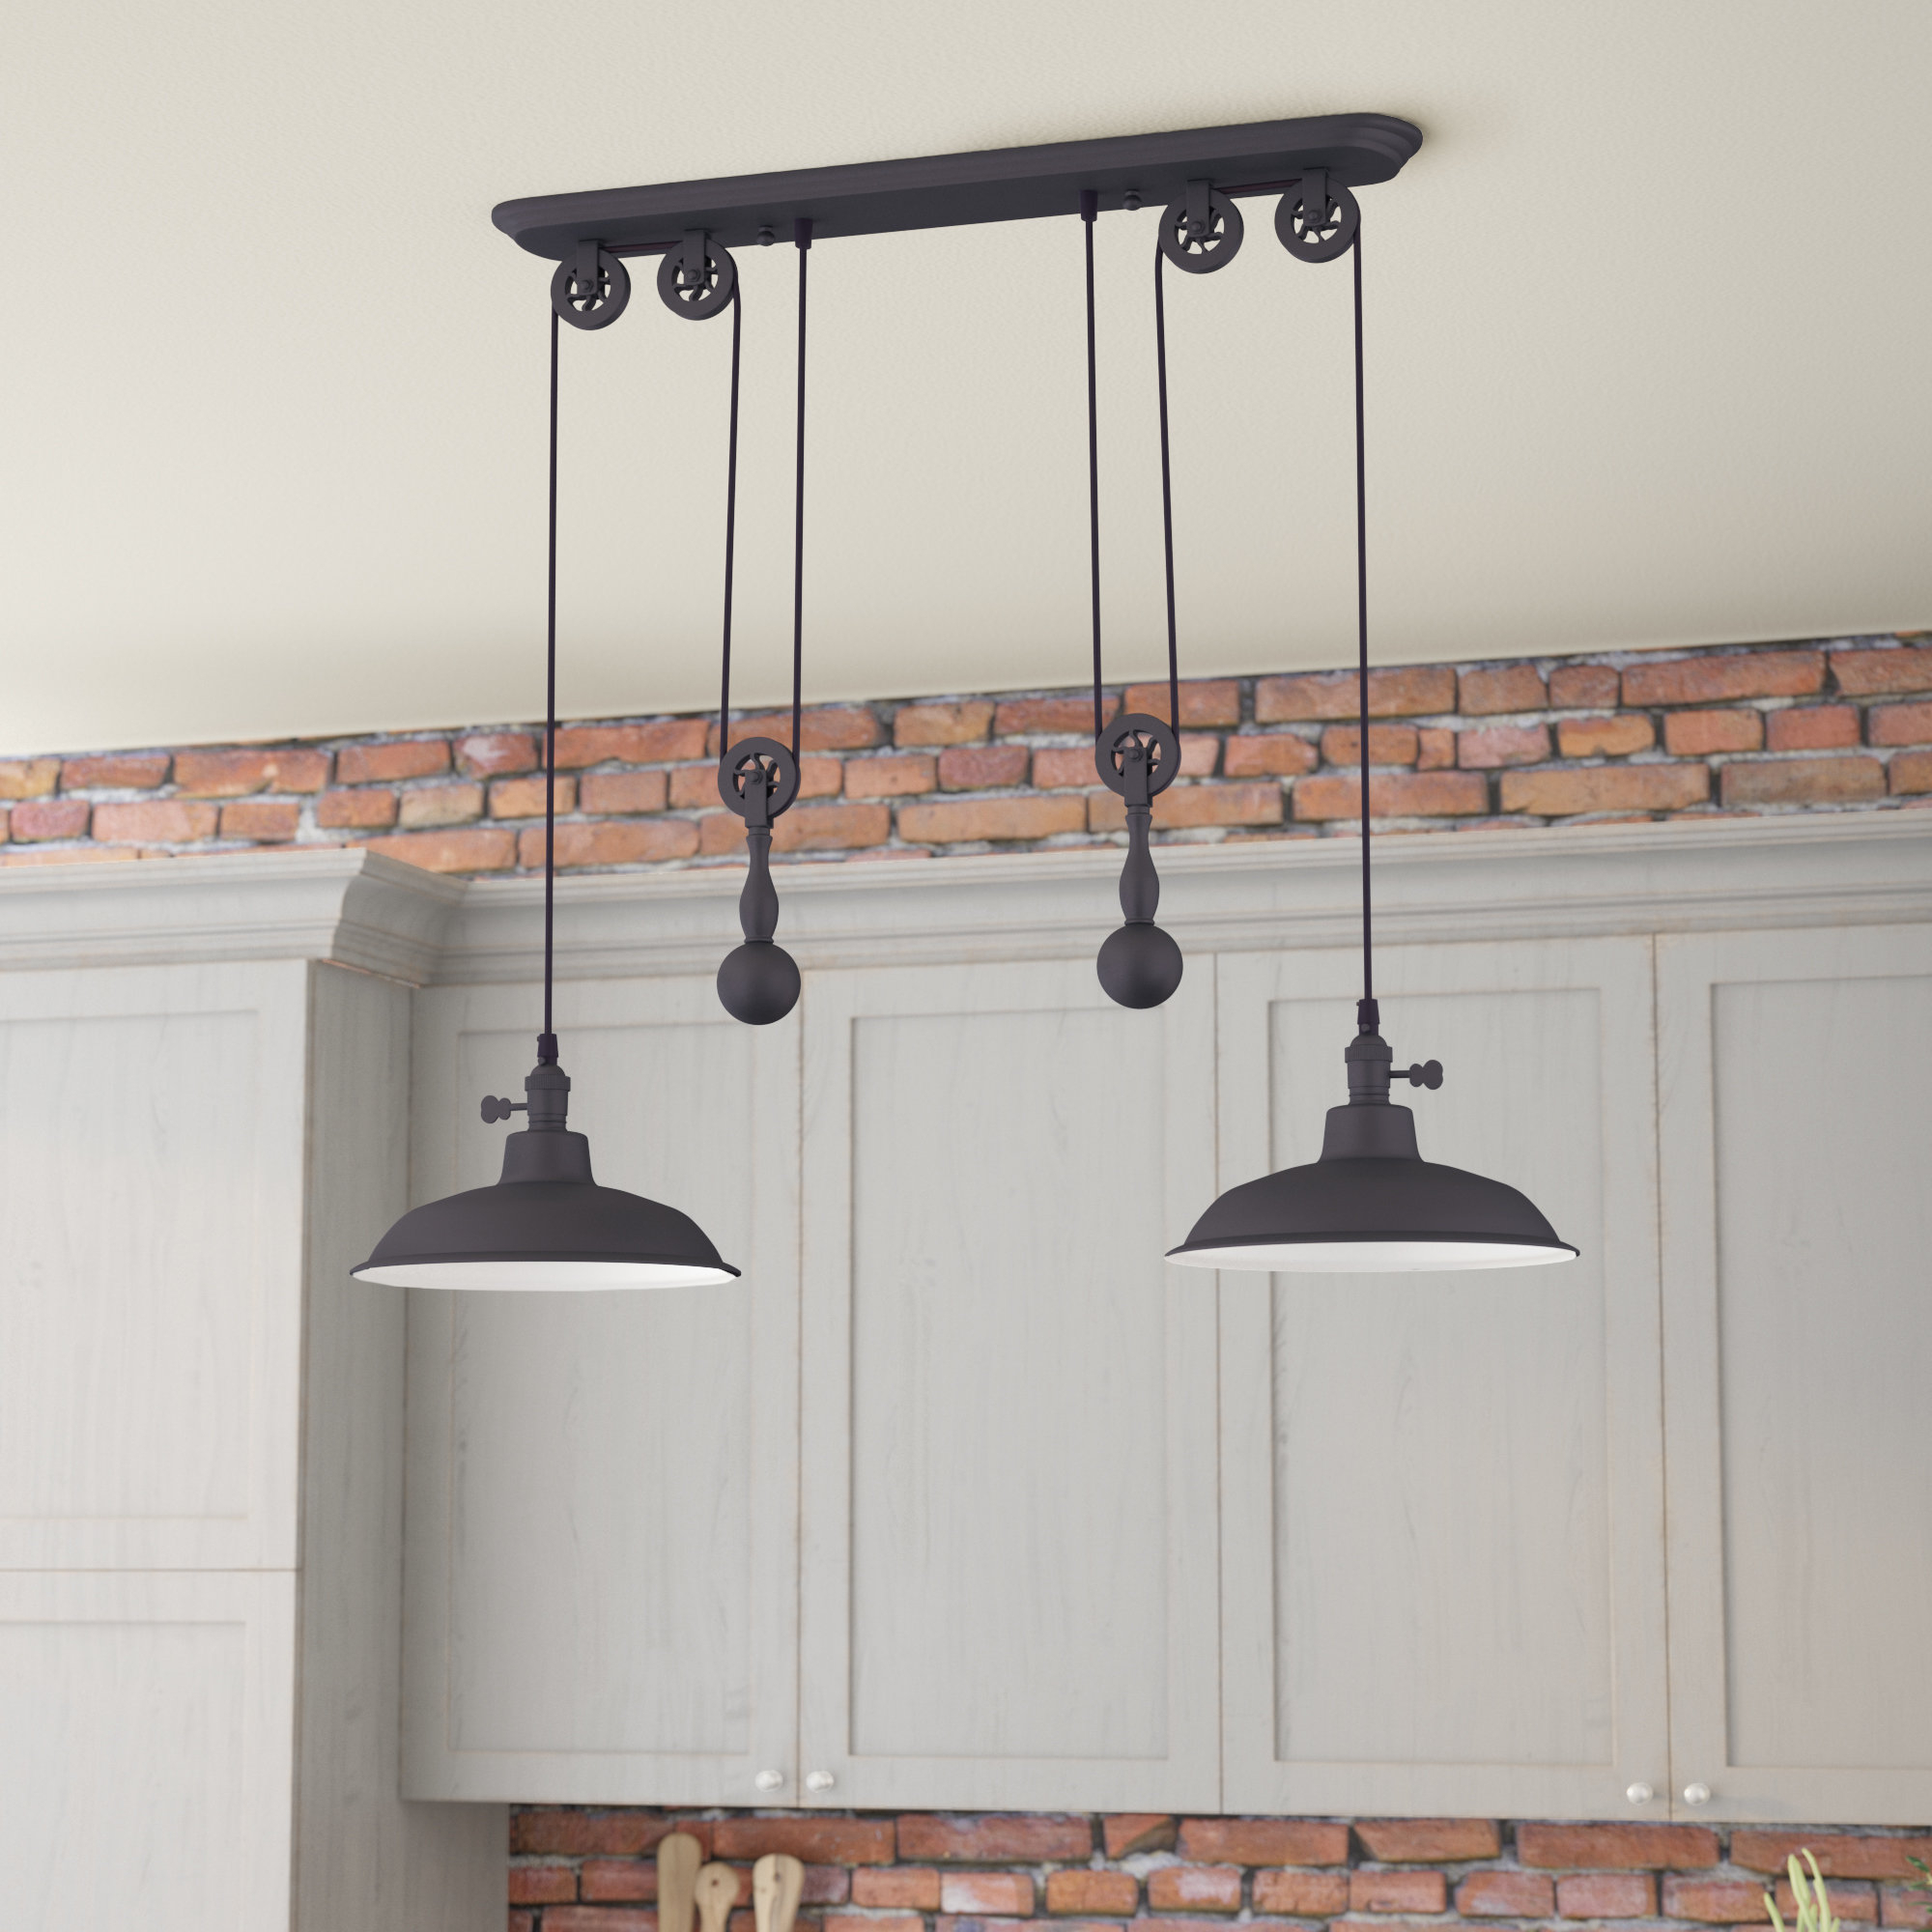 Ariel 2-Light Kitchen Island Dome Pendant with Martinique 3-Light Kitchen Island Dome Pendants (Image 2 of 30)